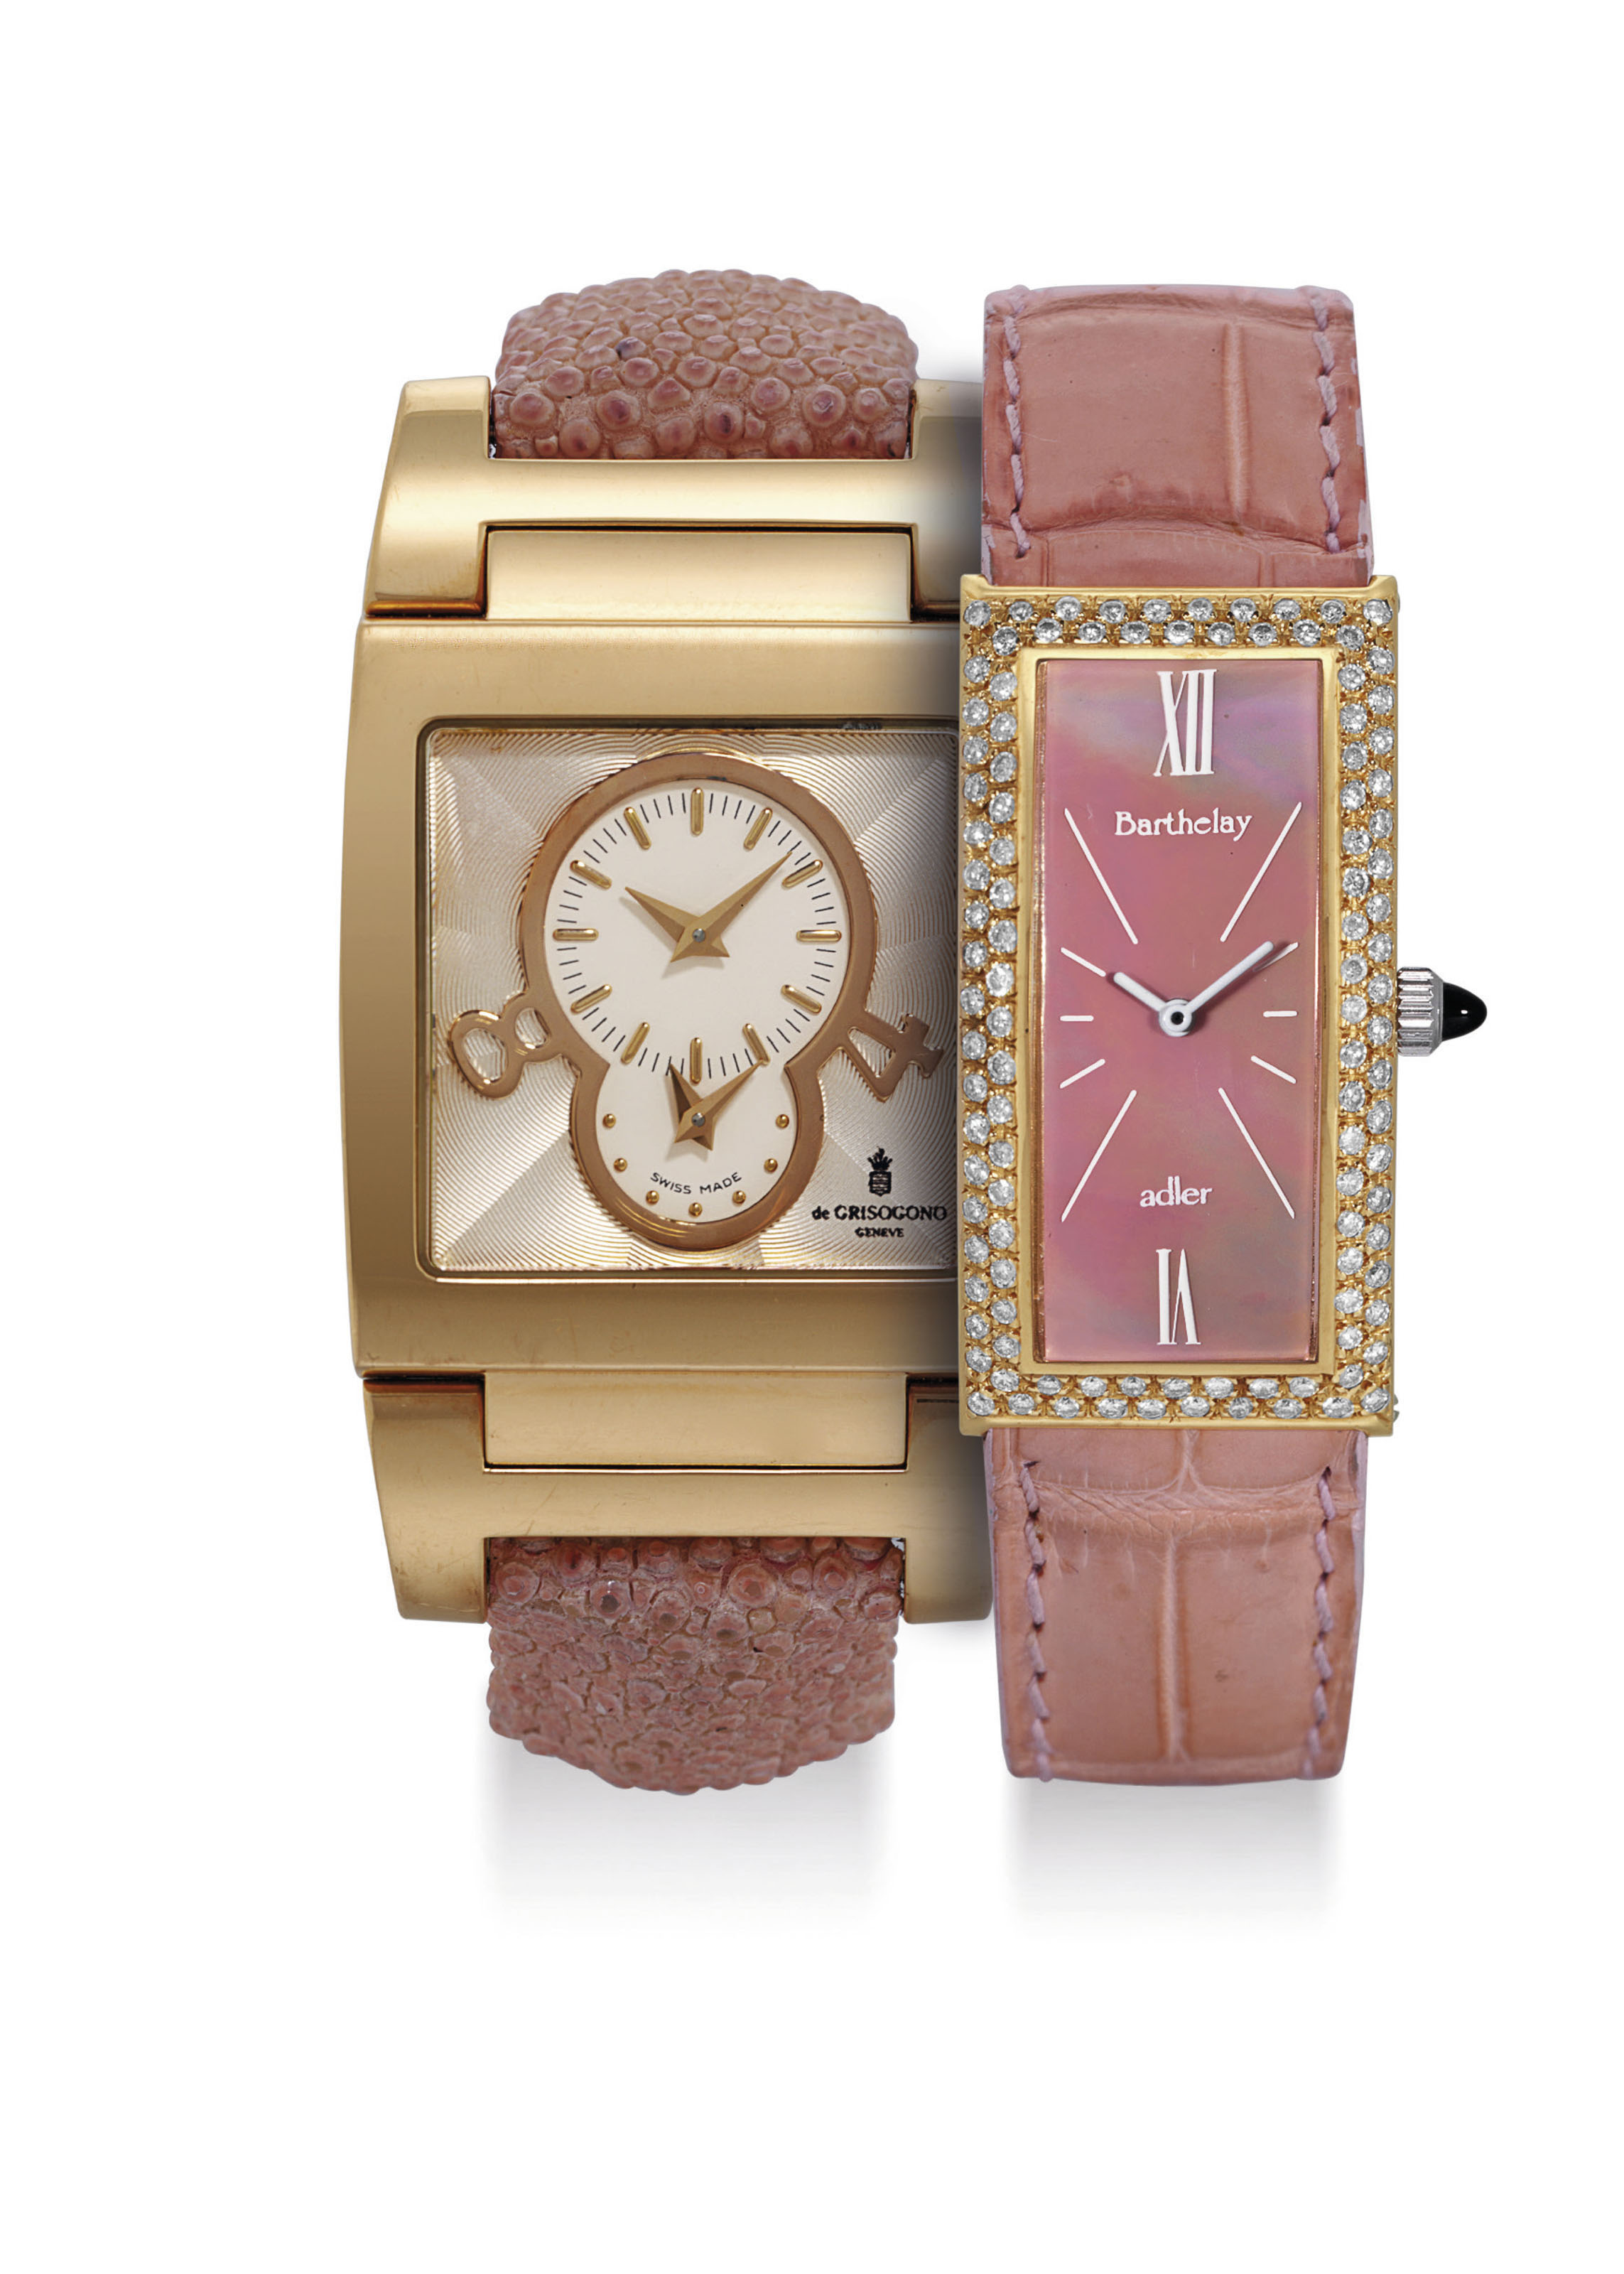 BARTHELAY AND DE GRISOGONO. A LADY'S GOLD PLATED AND DIAMOND-SET RECTANGULAR WRISTWATCH WITH MOTHER-OF-PEARL DIAL AND A LADY'S 18K PINK GOLD SQUARE AUTOMATIC DUAL TIME WRISTWATCH